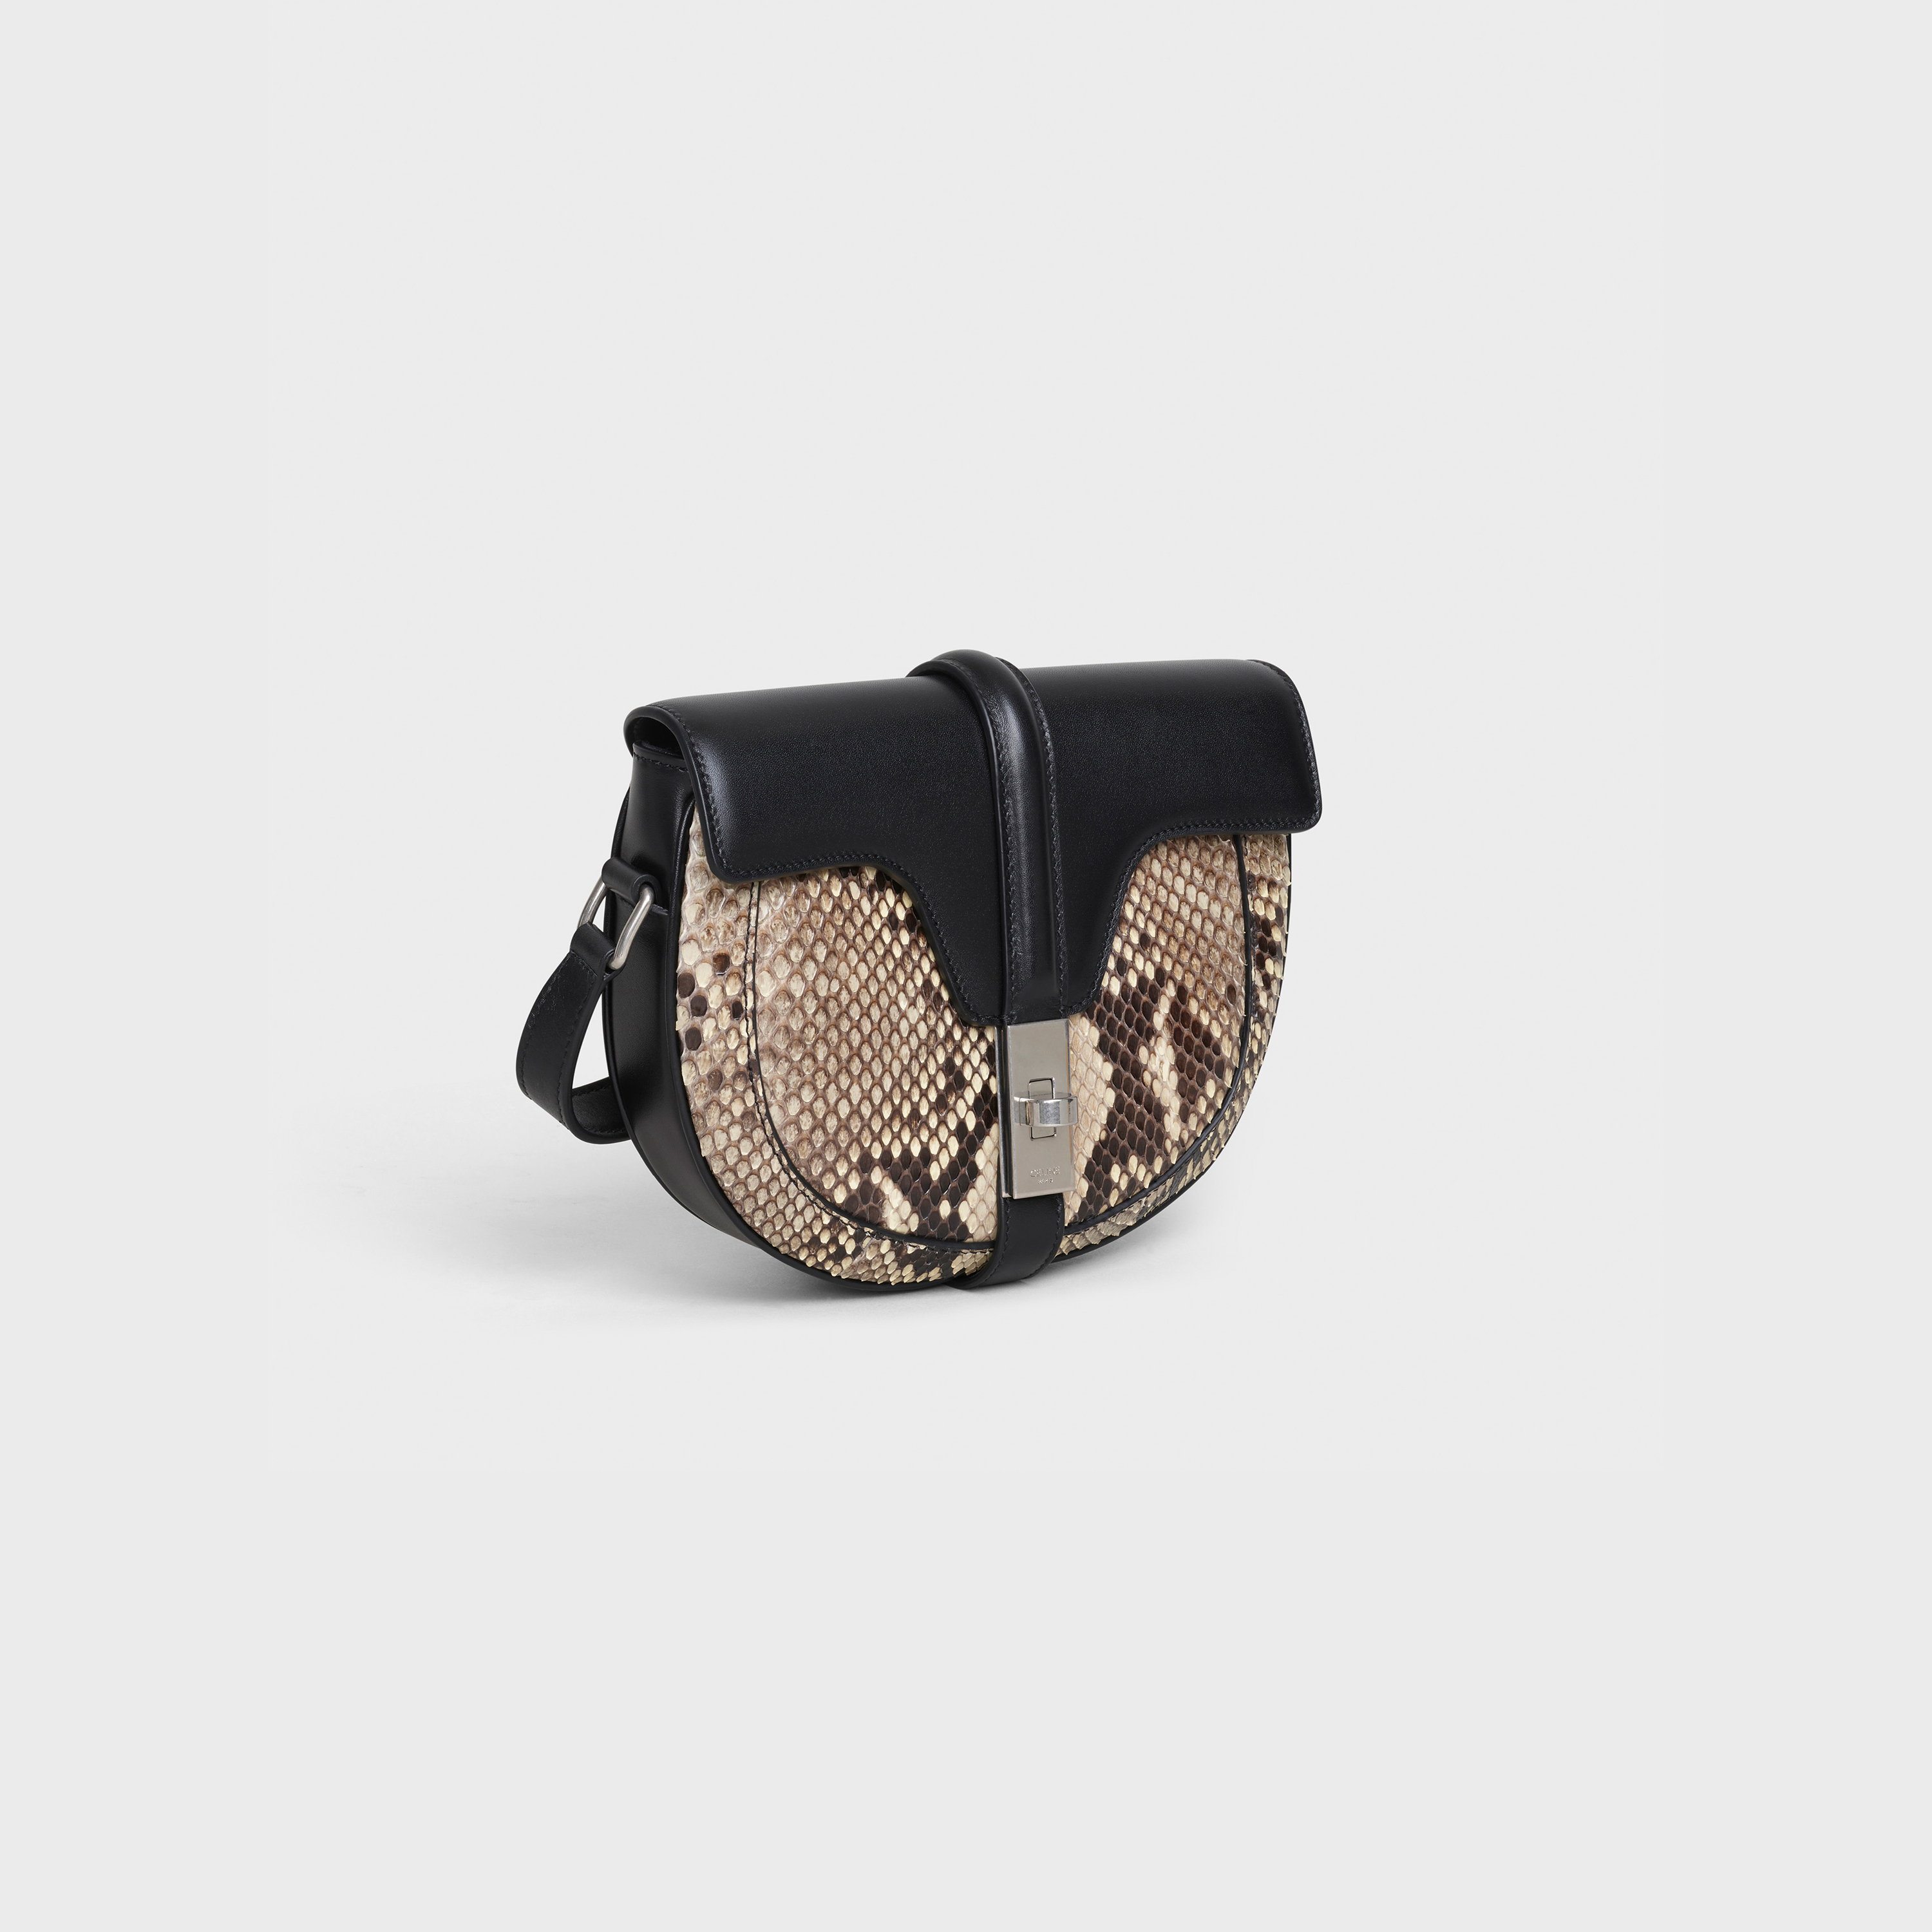 Small Besace 16 Bag in python and satinated calfskin | CELINE